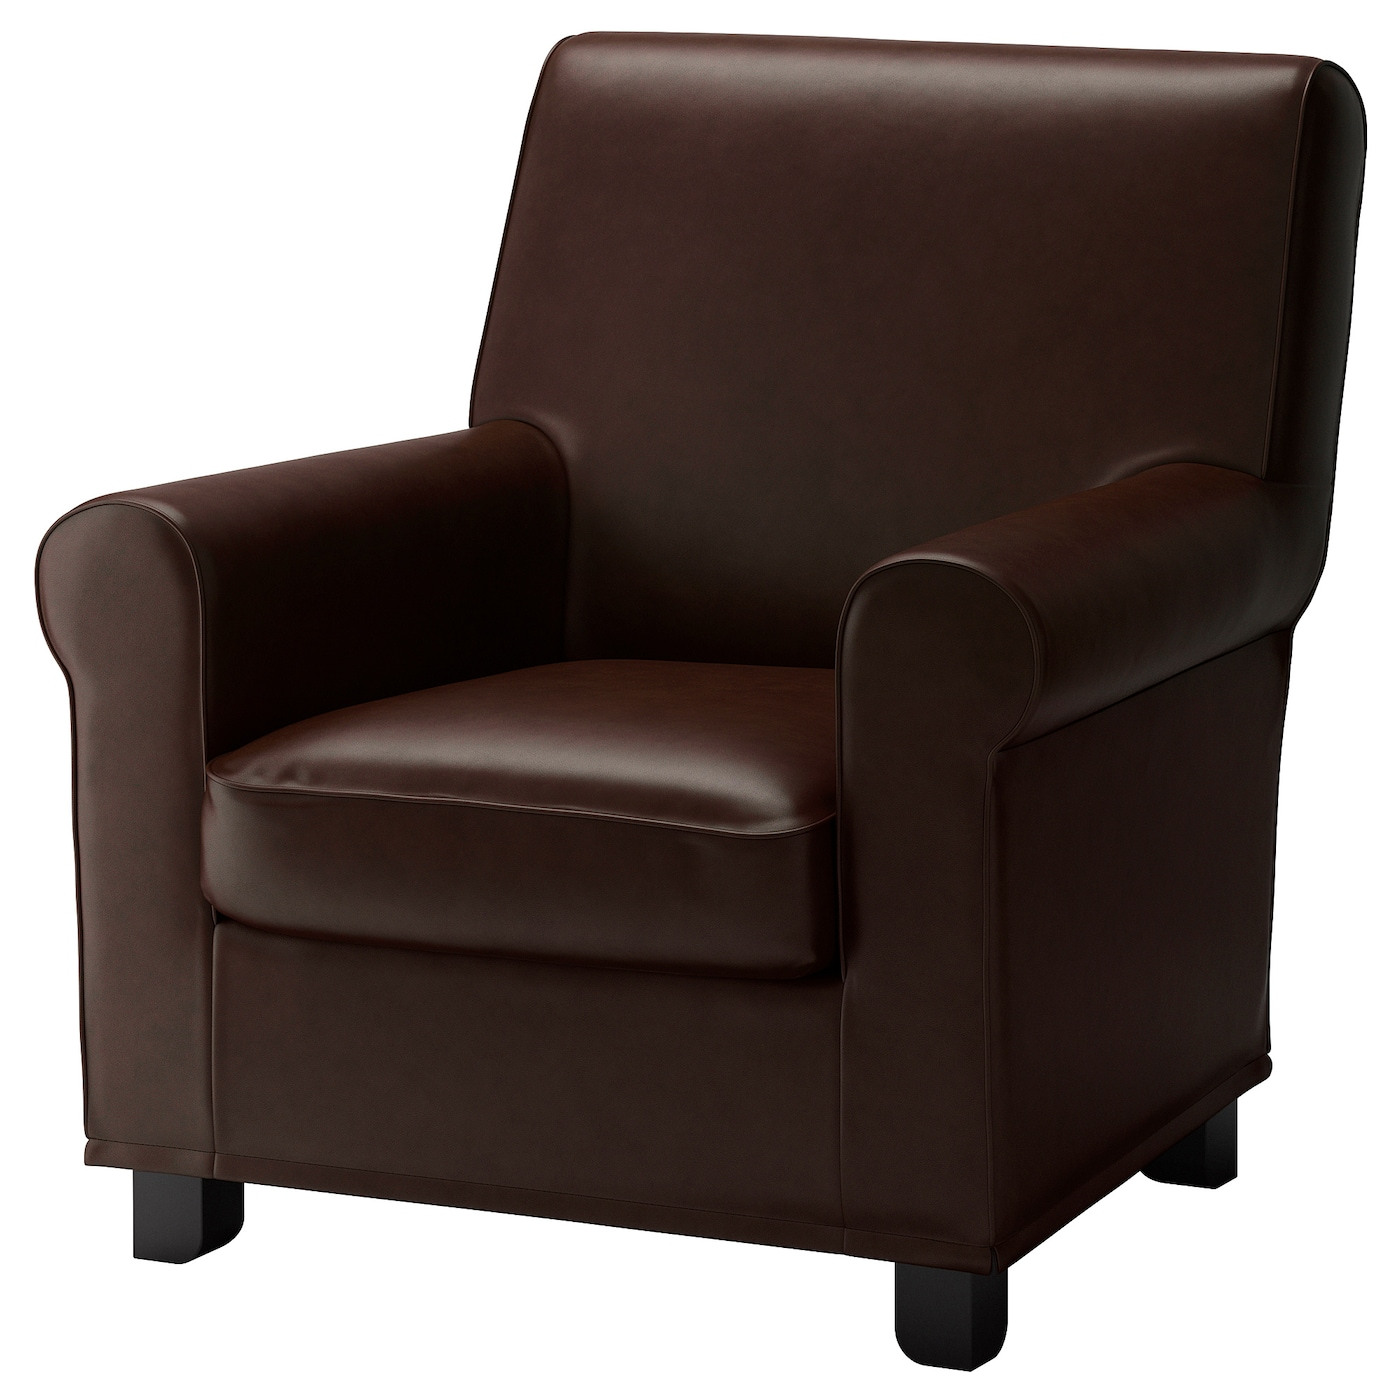 IKEA GRÖNLID armchair The cover is easy to keep clean as it can be wiped clean with a damp cloth.